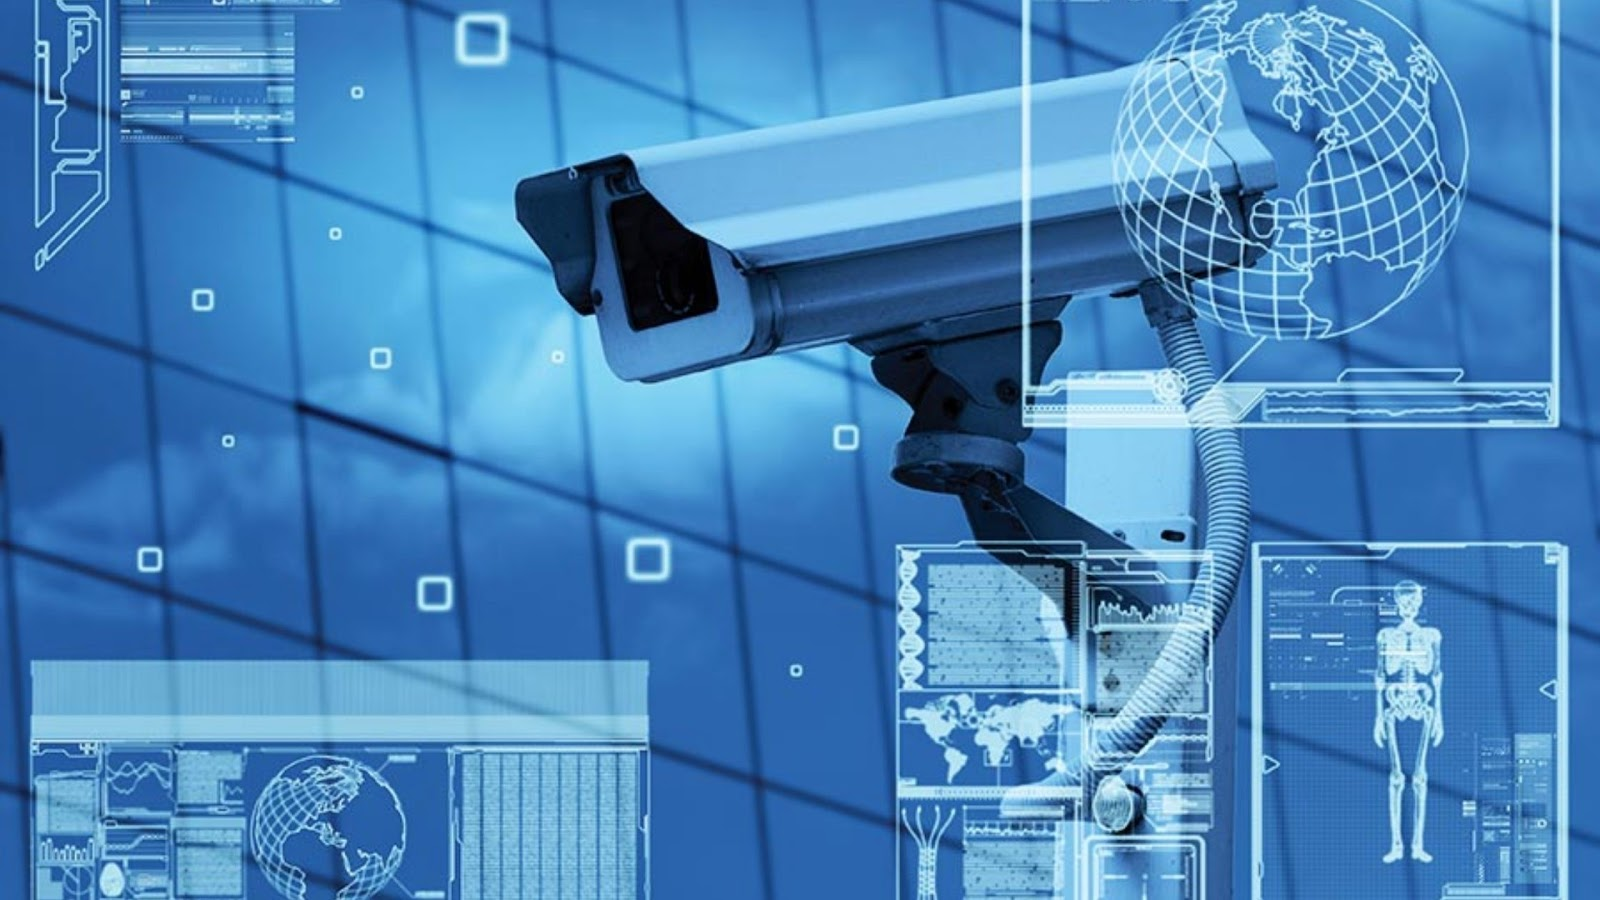 The AI-powered surveillance system